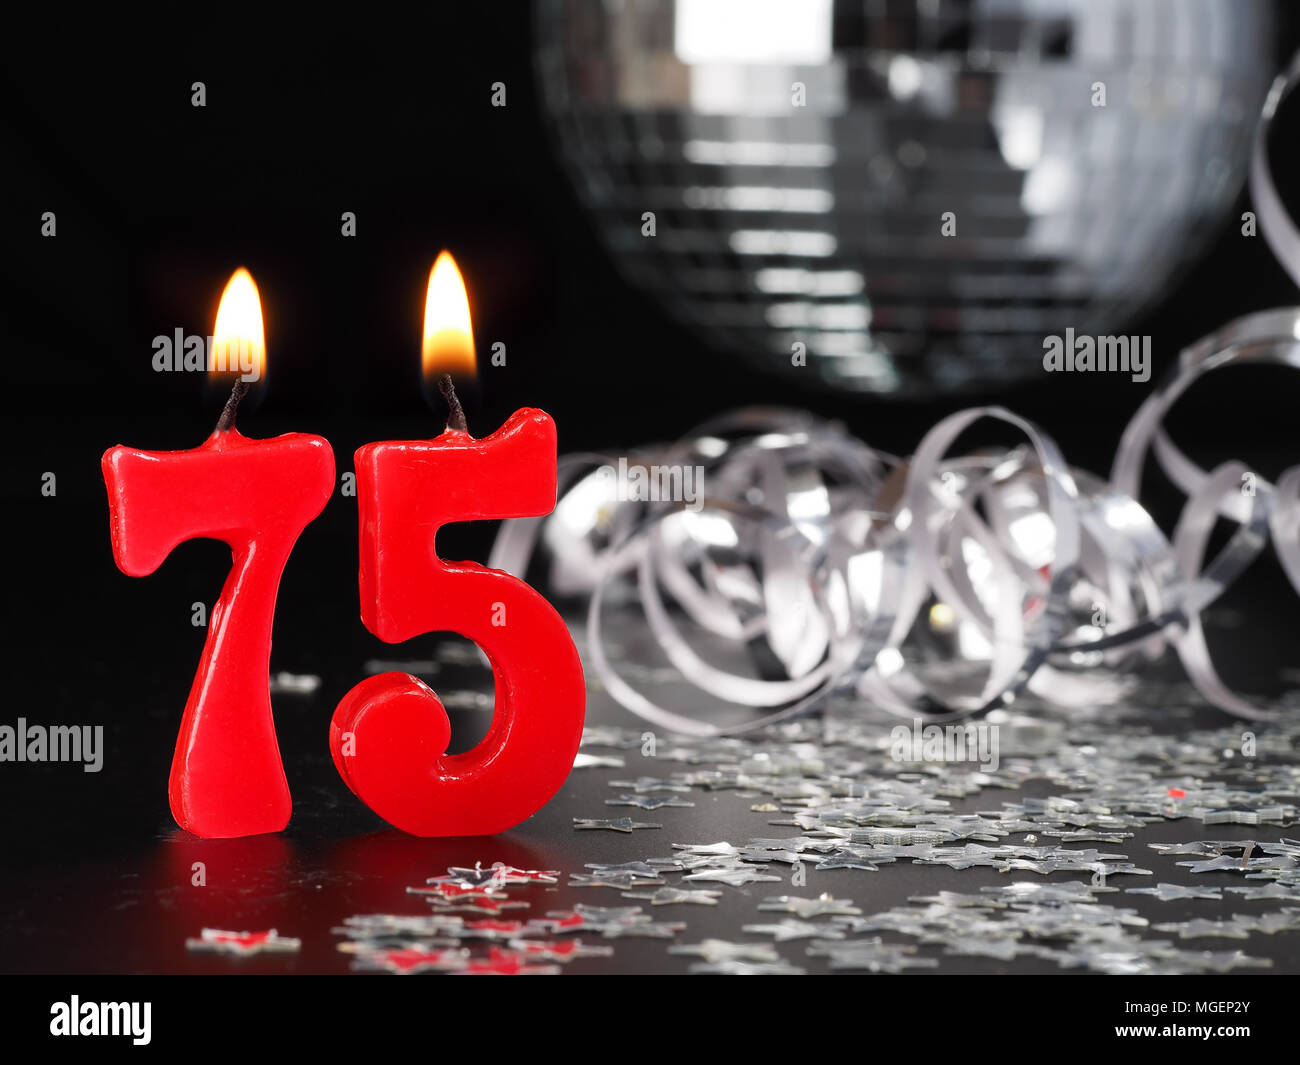 Red Candles Showing Nr 75 Abstract Background For Birthday Or Anniversary Party